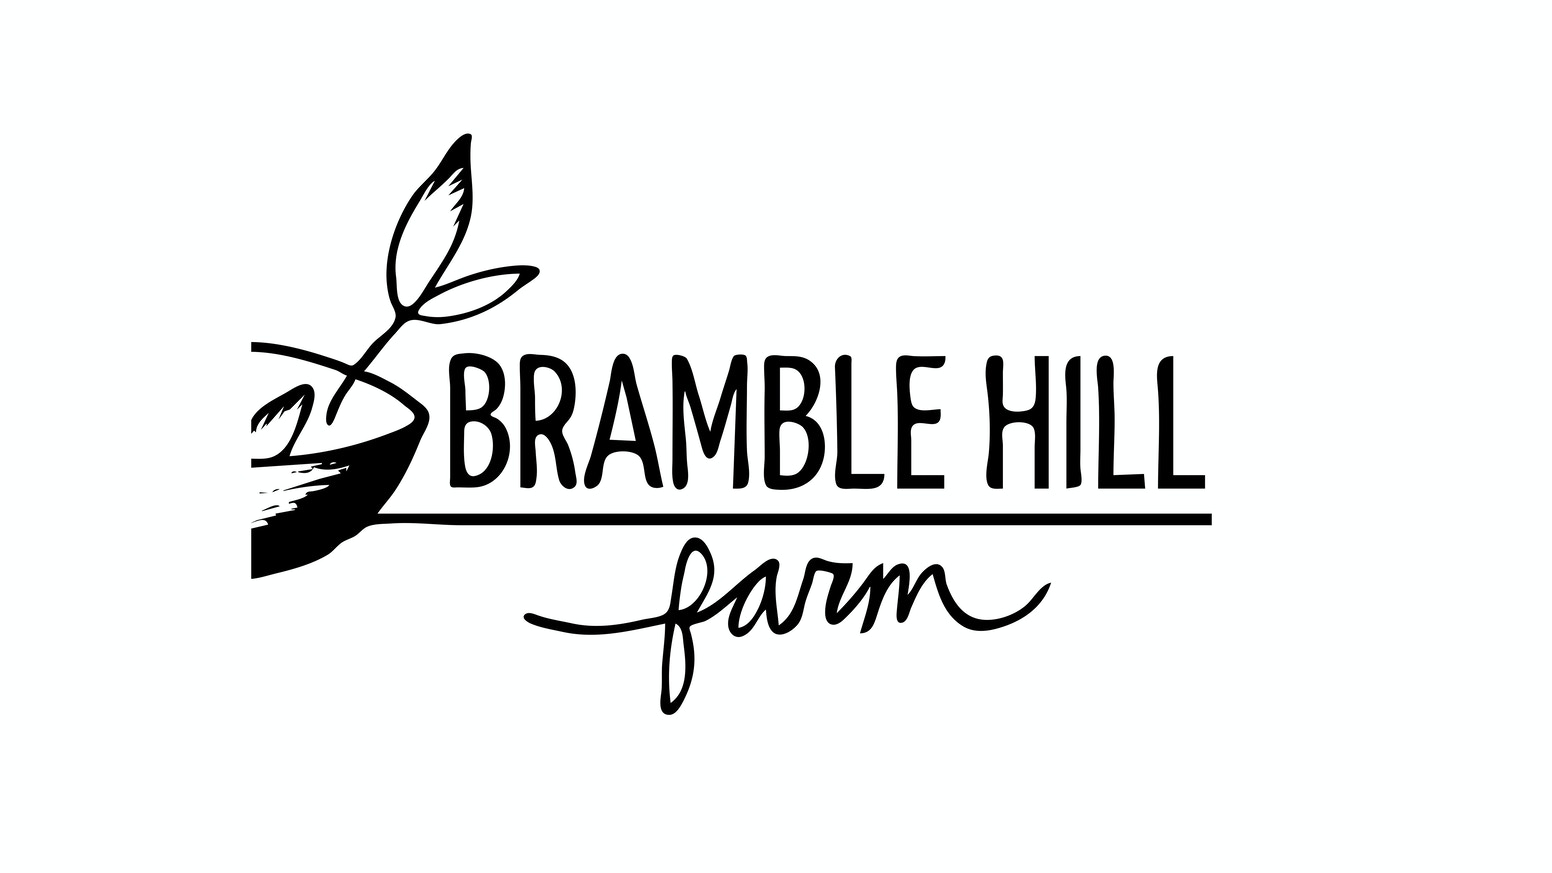 Bramble Hill Farm year-round salad production! by Cathy